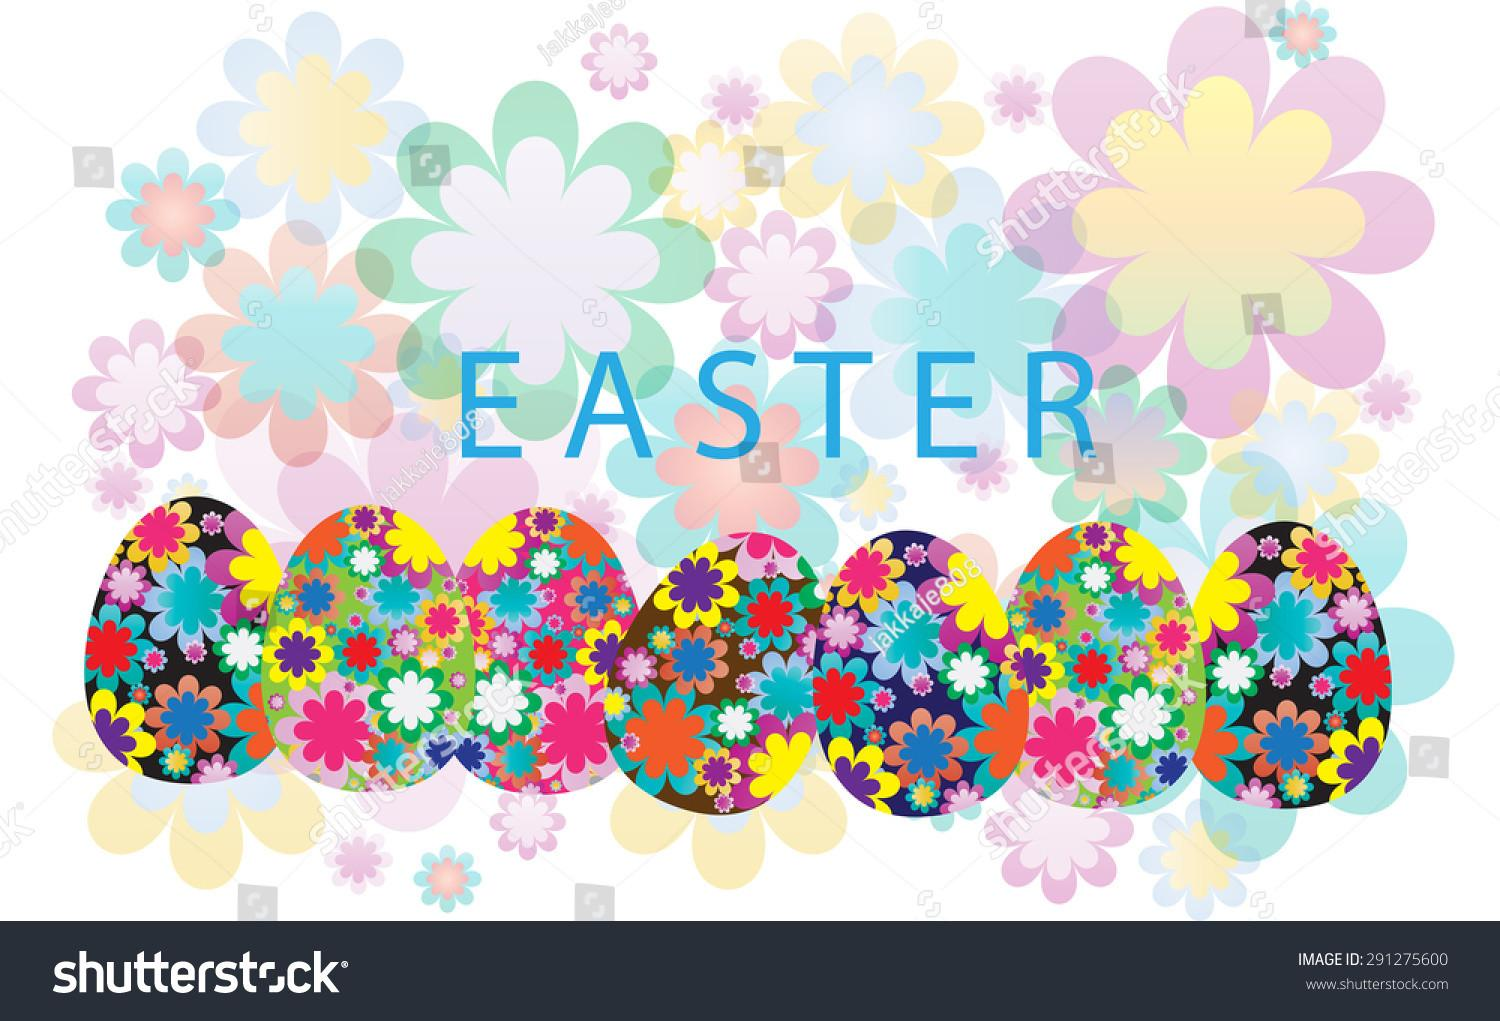 Happy Easter Egg Colorful Flower Graphic Stock